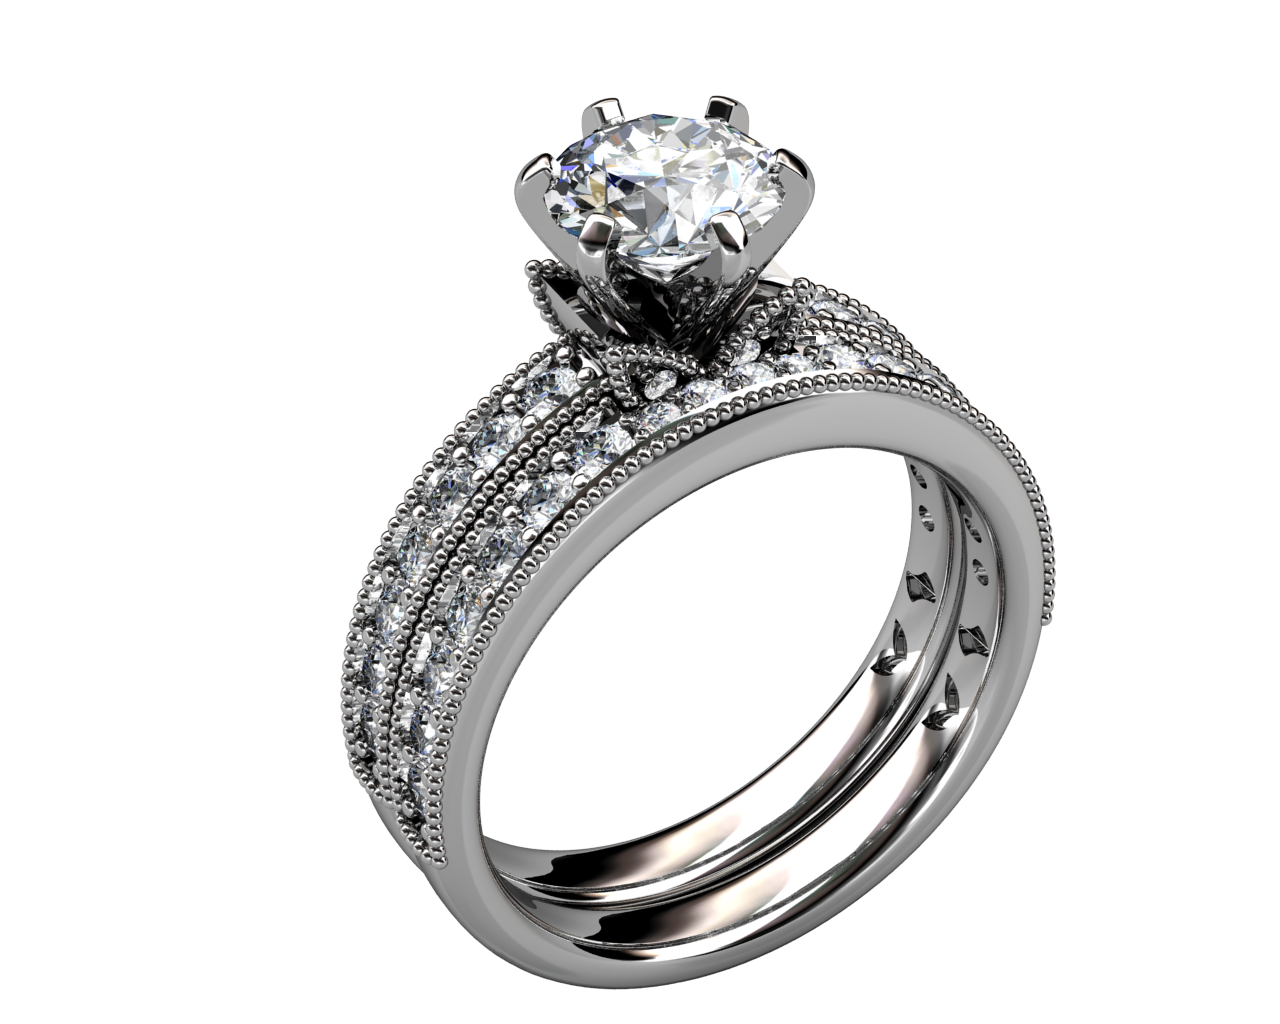 freeuse stock Inexpensive engagement rings